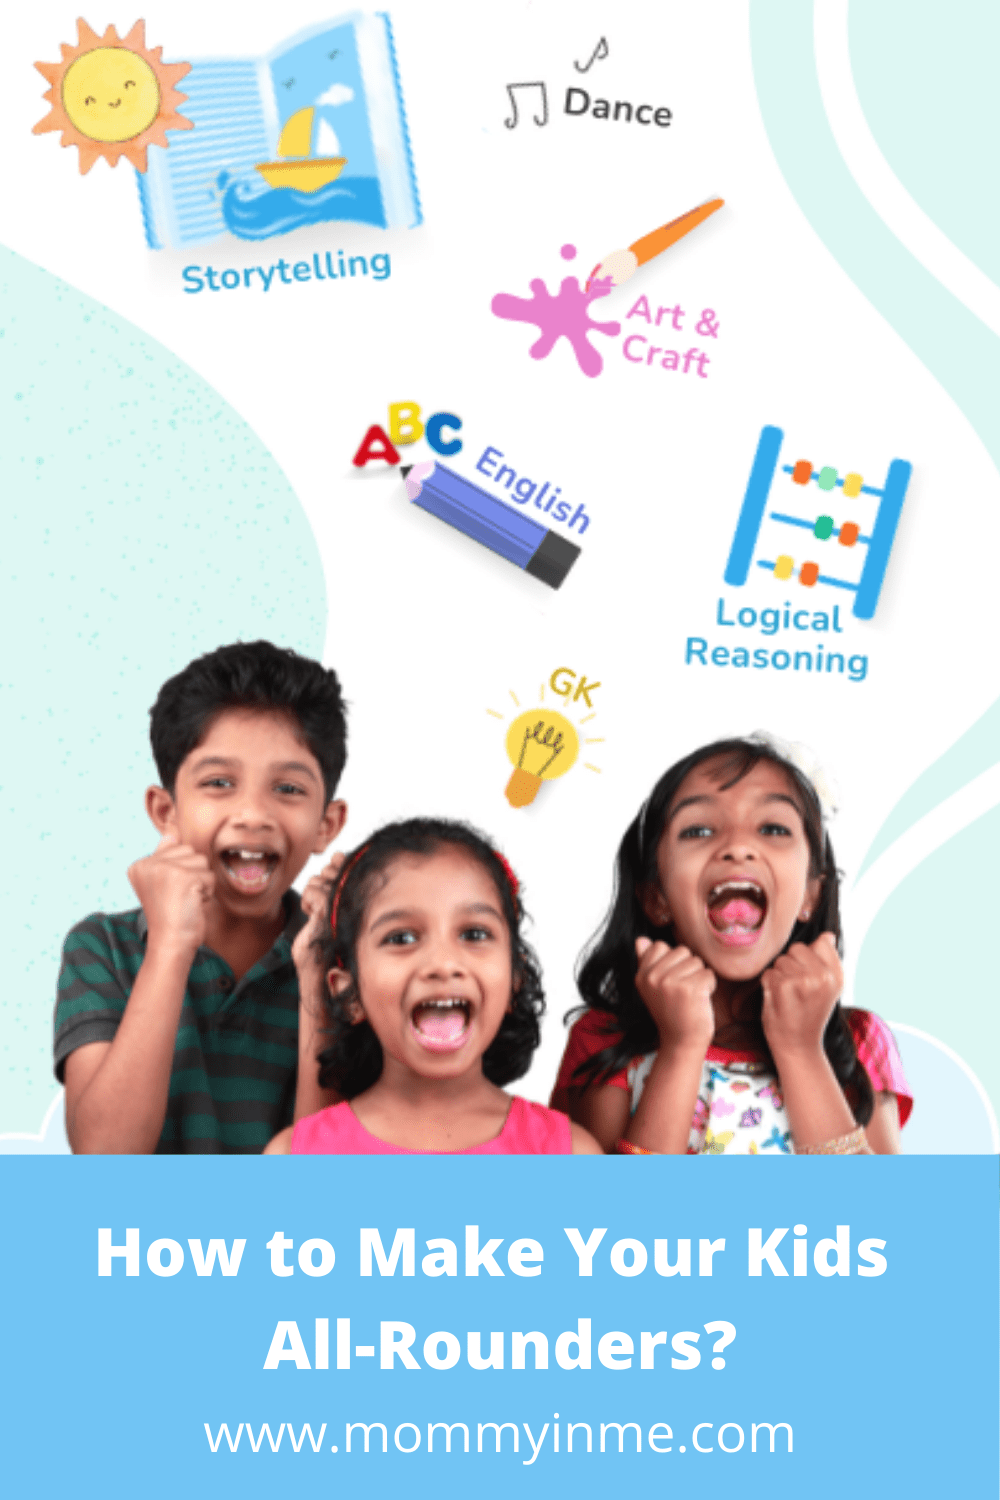 Are you looking for Summer camp and Hobby classes for children this summer? Then check out the Hobby classes for children at Yellow Class for free. #hobbyclass #summercamp #danceclasses #artandcraft #craft #diy #paintingclasses #craftclasses #storytelling #yellowclass